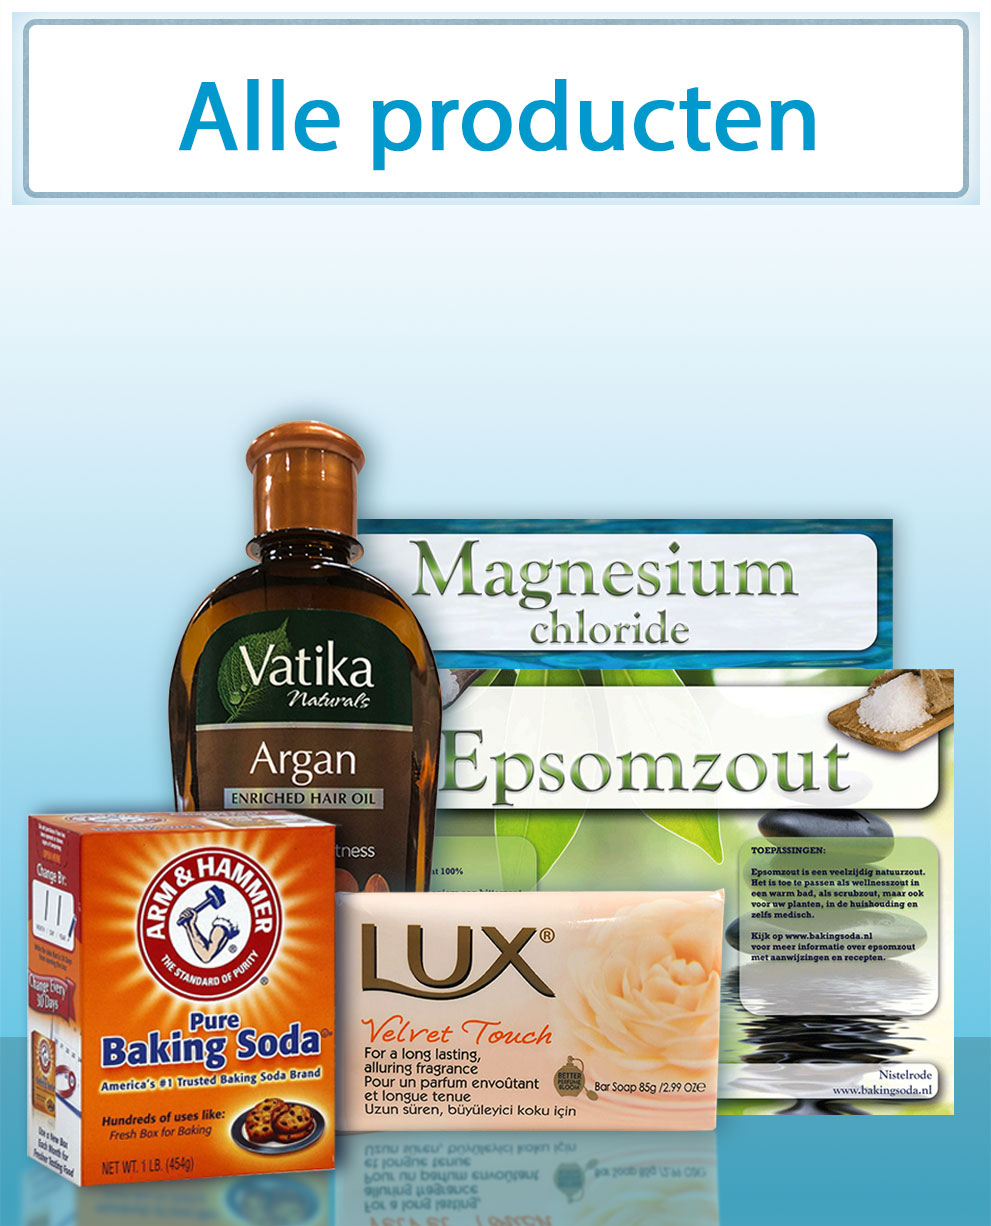 Categorie-11-Alle-producten-bakingsoda-nl